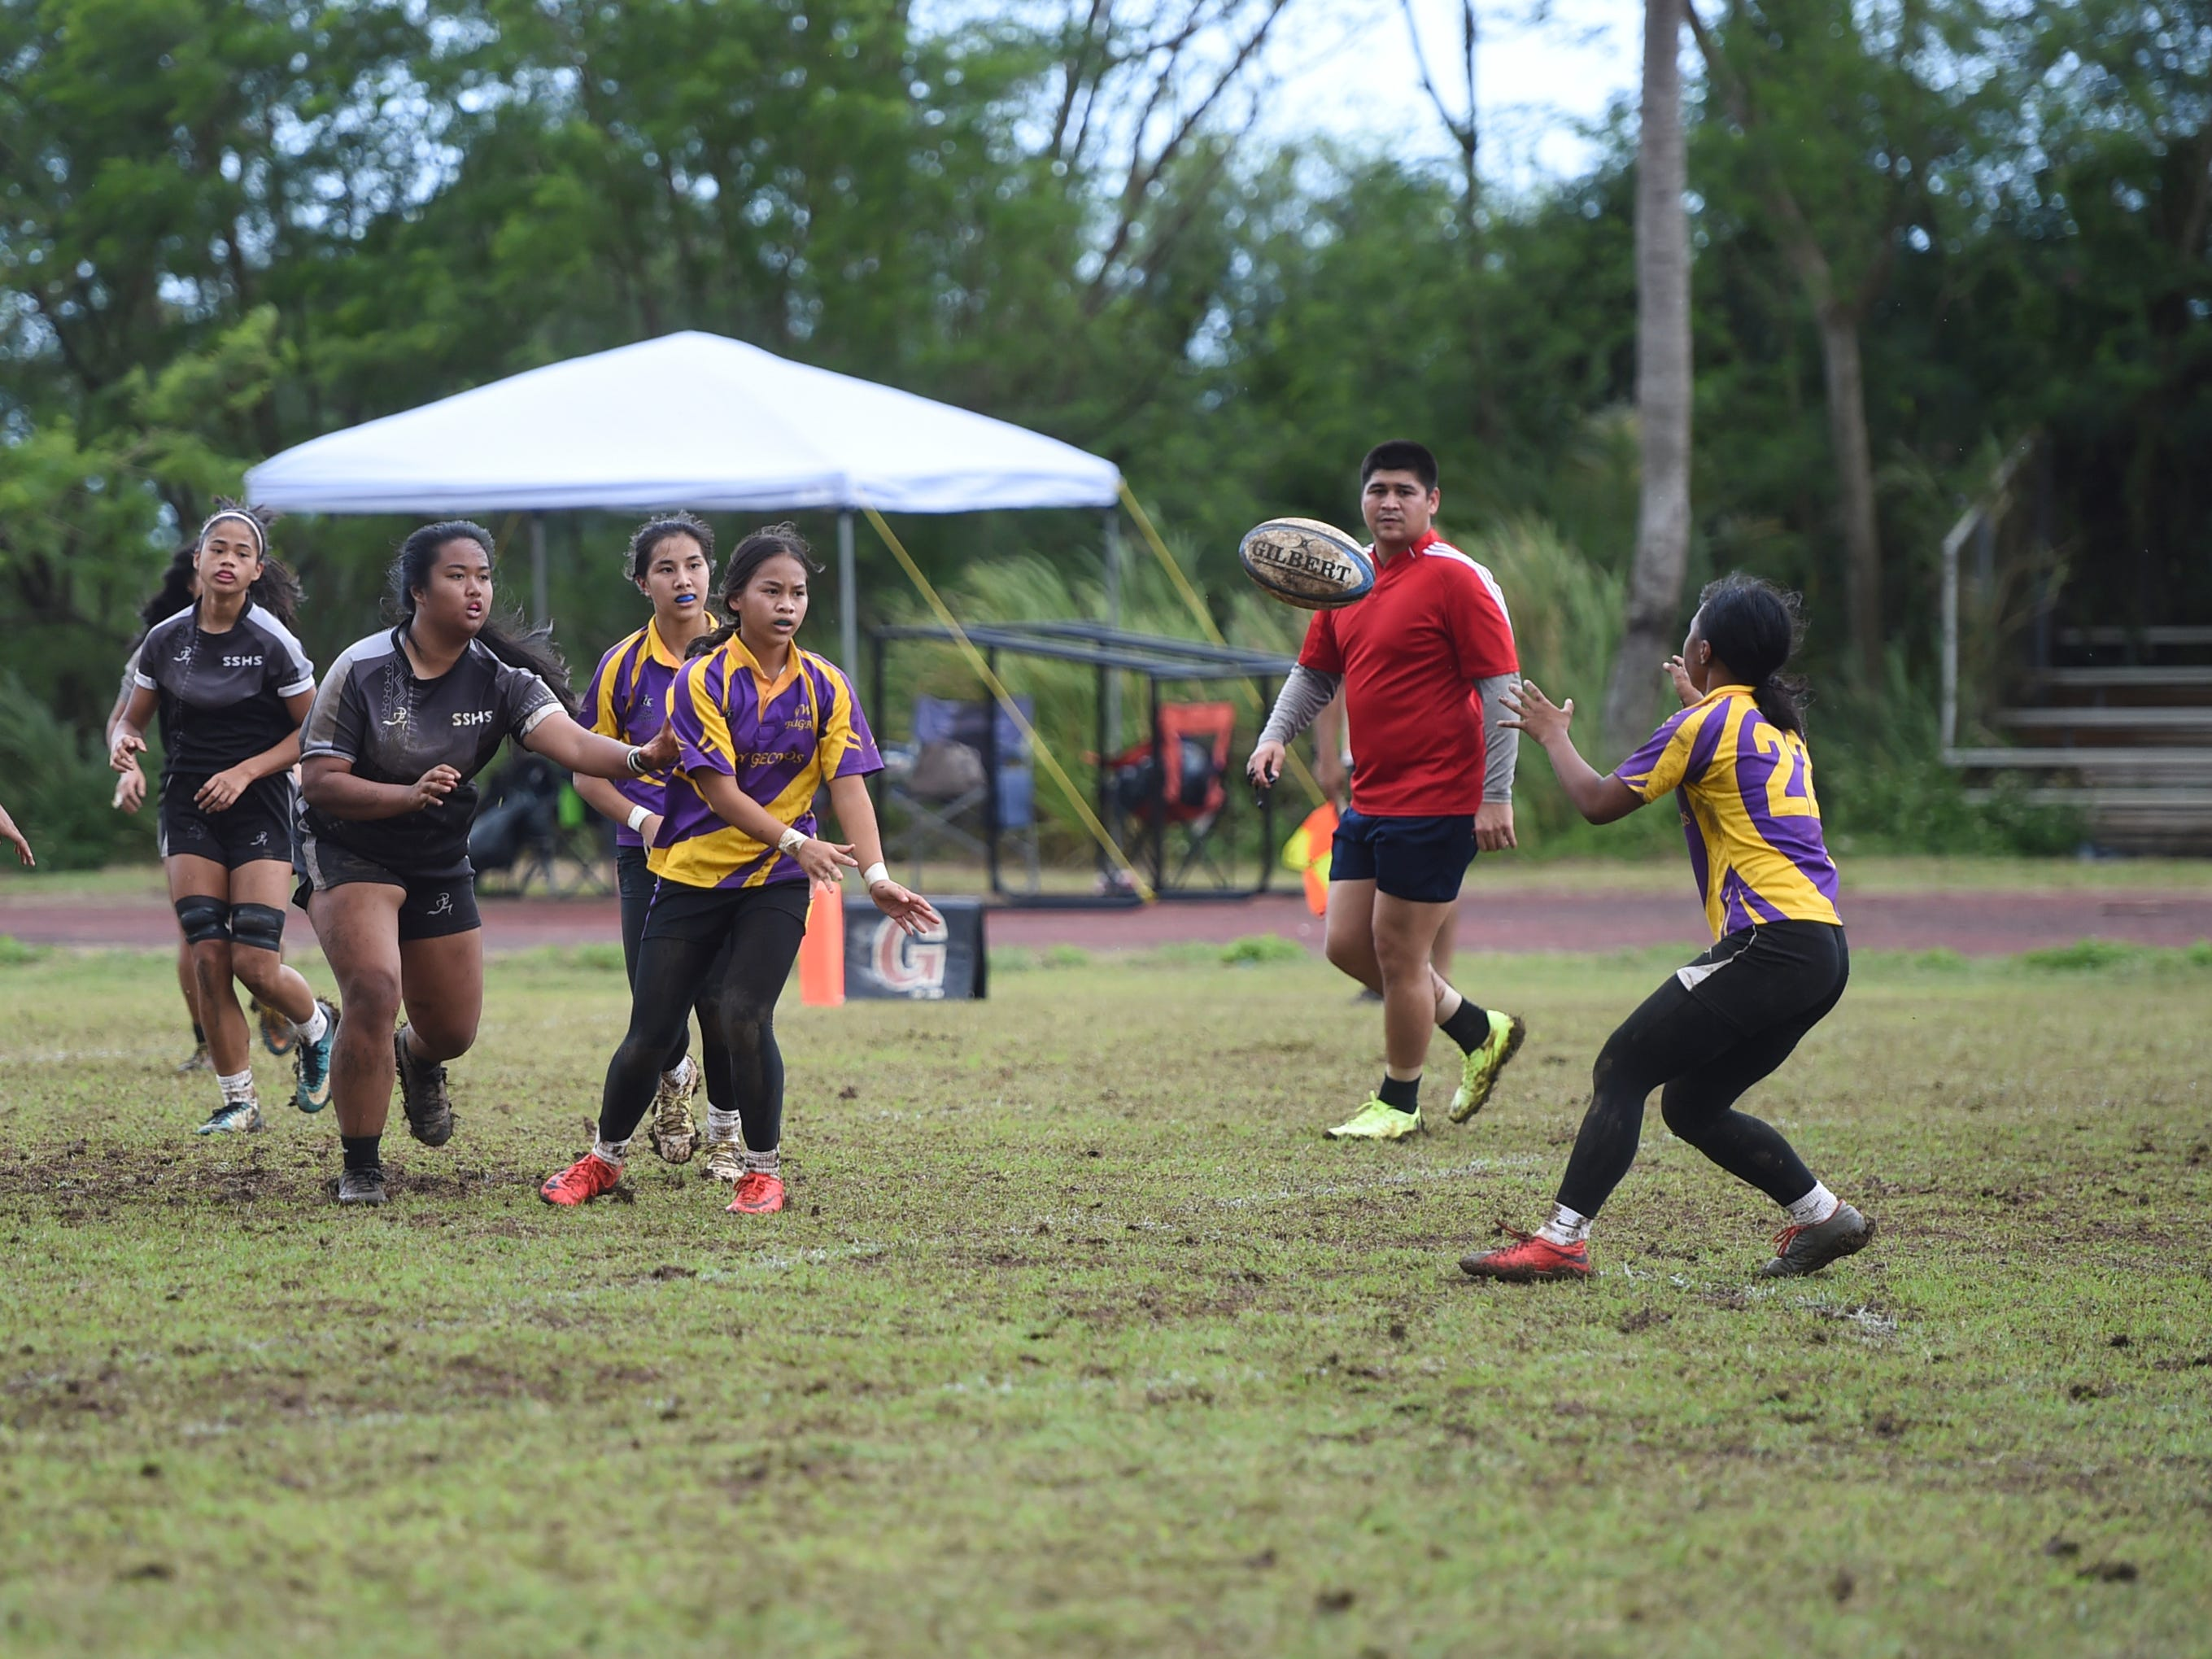 George Washington Geckos player Frankie Unchangco passes to Daeline Pangelinan (22) during their IIAAG Girls' Rugby match at the Southern High School Field, Feb. 9, 2019.